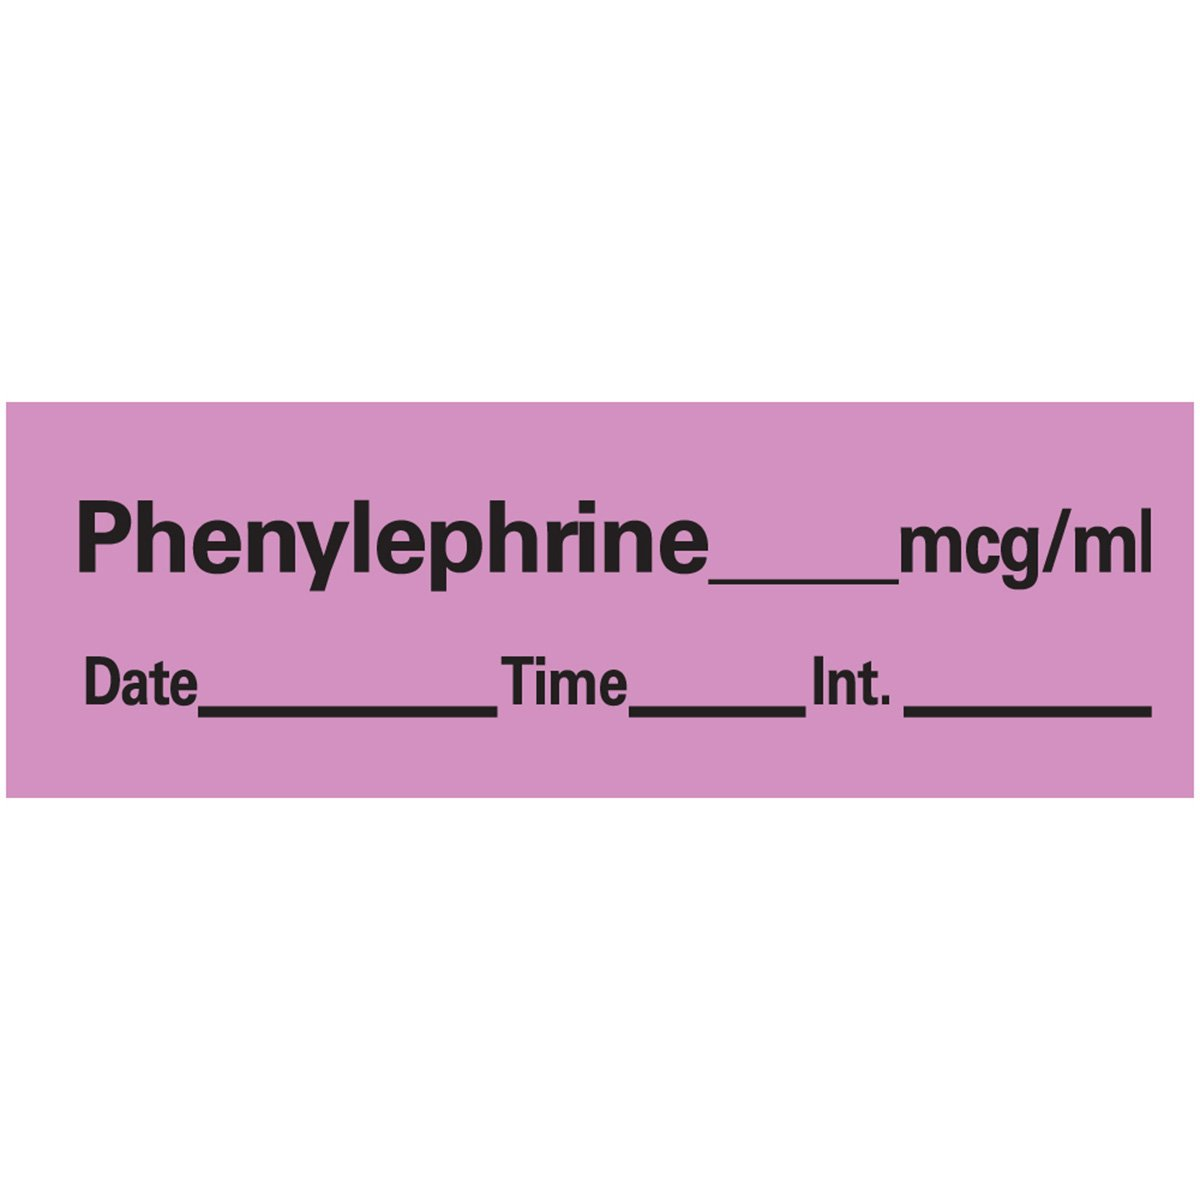 PDC Healthcare AN-81MCG Anesthesia Tape with Date, Time and Initial, Removable, Phenylephrine Mcg/mL 1'' Core, 1/2'' x 500'', Imprints Violet 333 (Pack of 1)